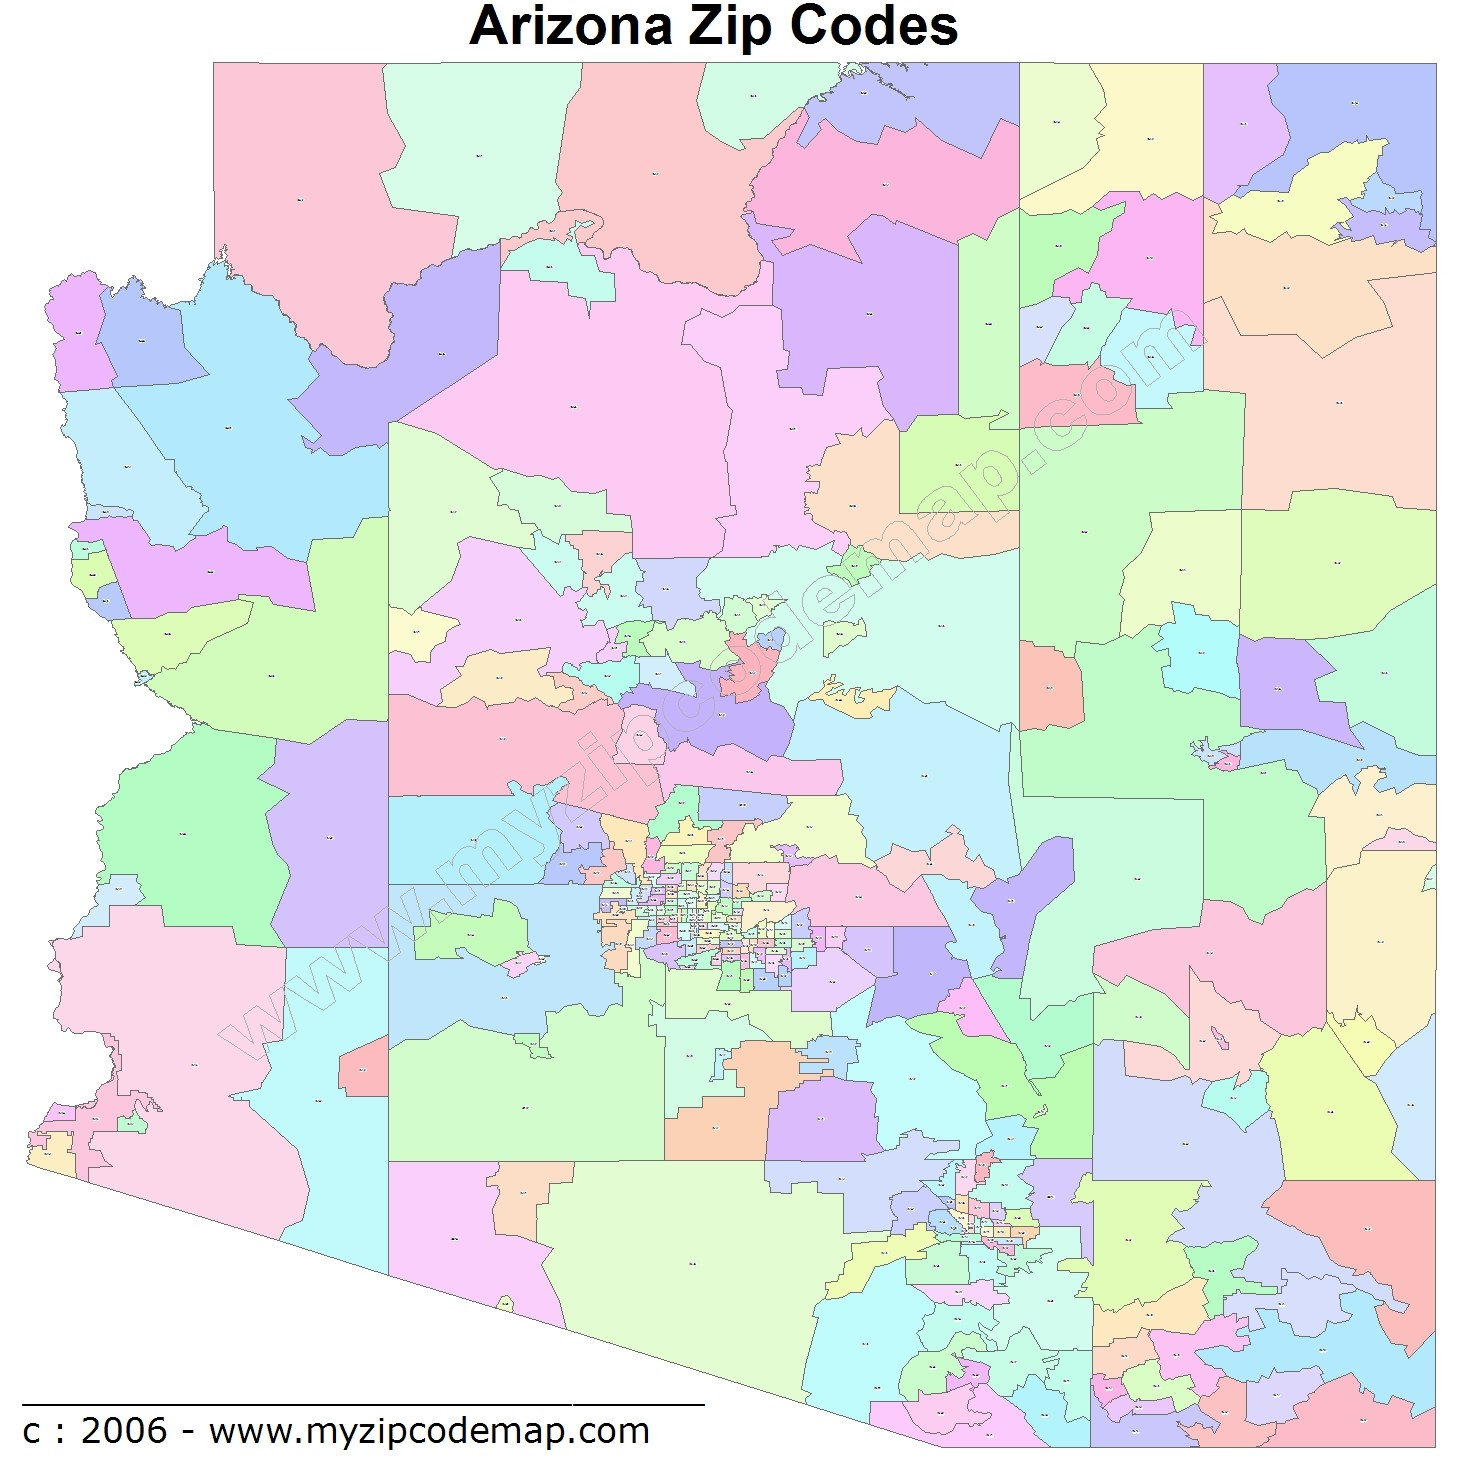 Arizona (AZ) Zip Code Map